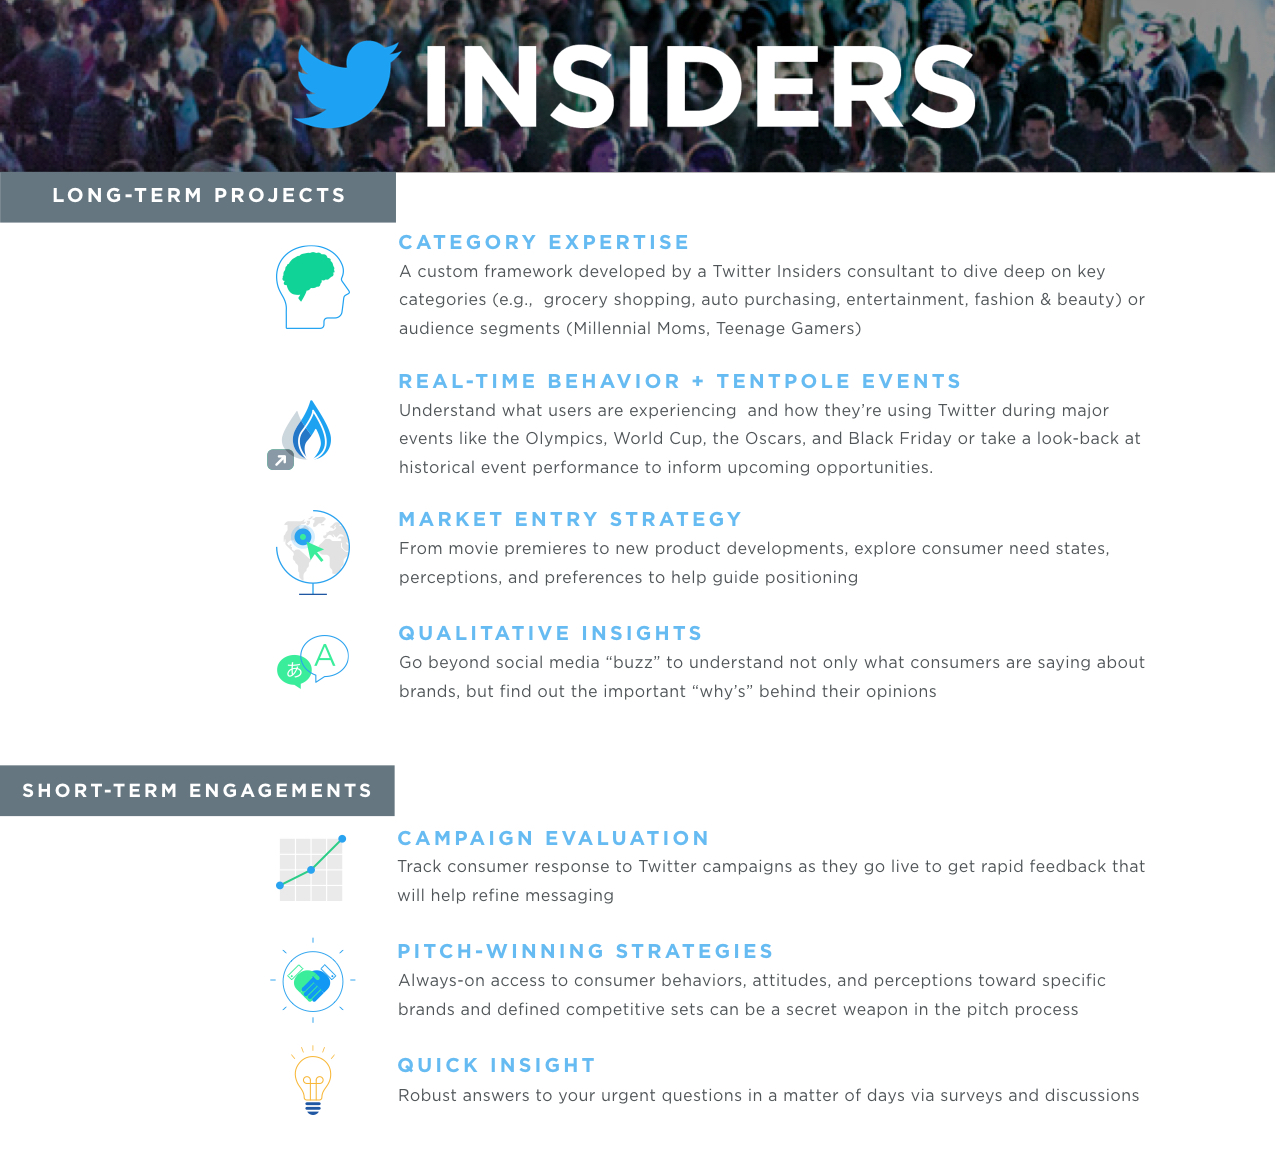 Twitter Introduces New 'Insiders' Brand Feedback Panel to Help Maximize Performance | Social Media Today